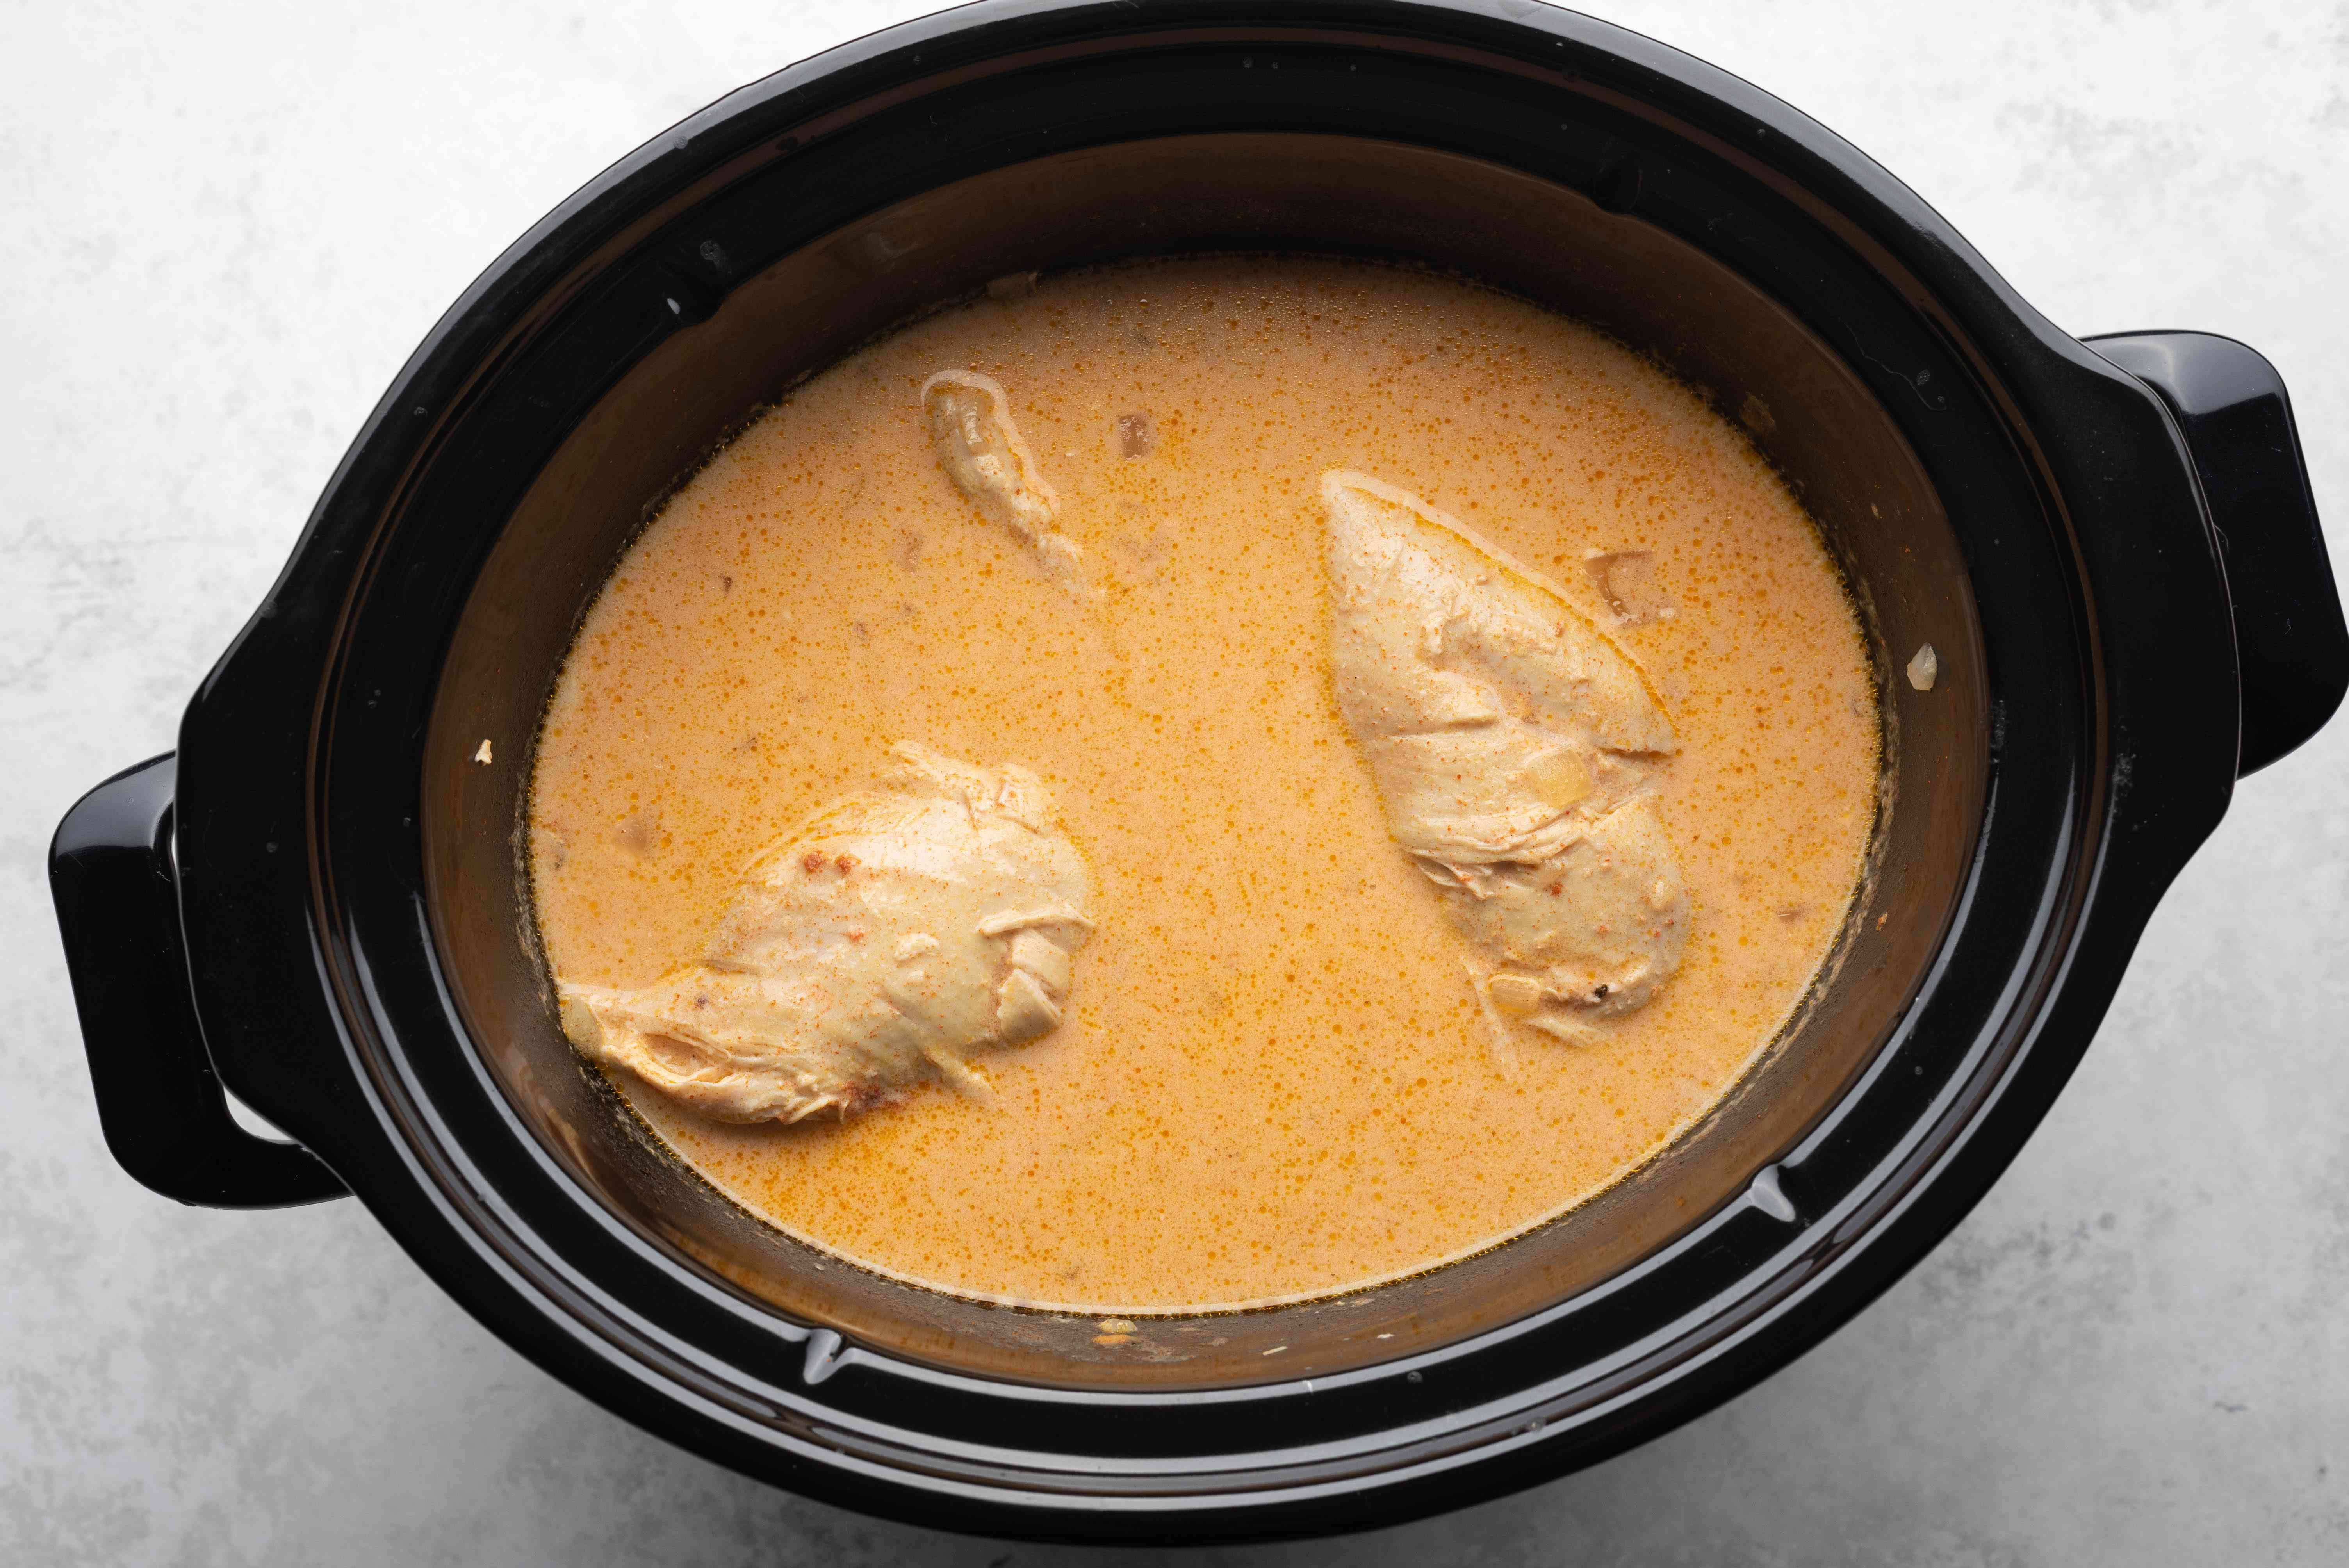 cooked chicken in a slow cooker